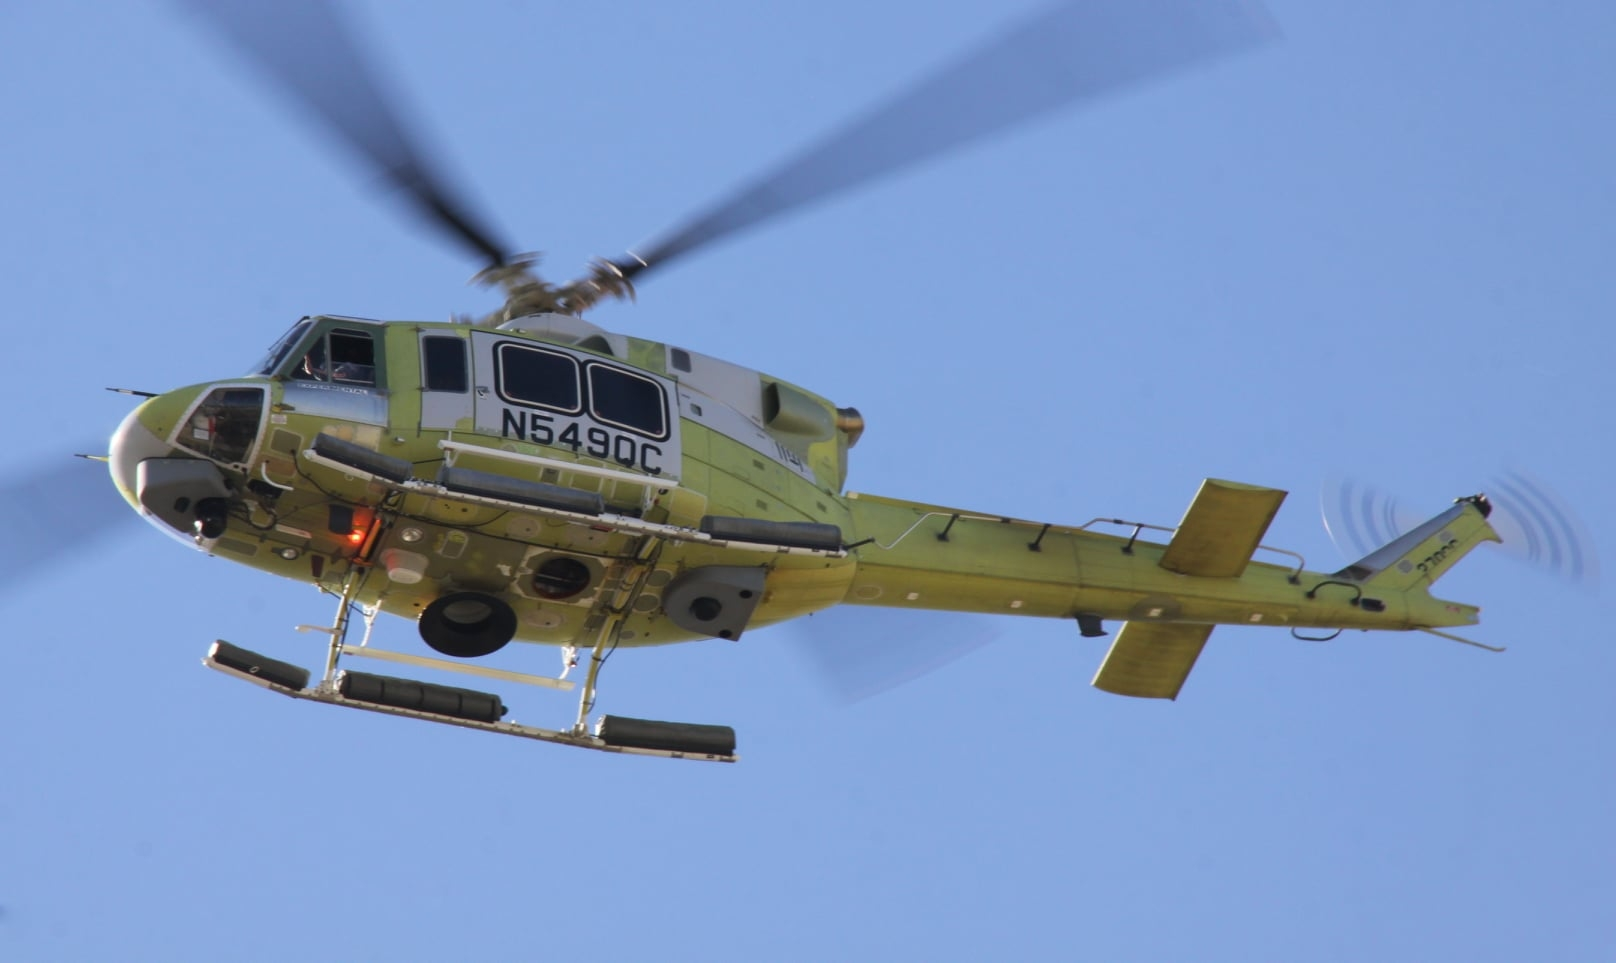 Bell 412 EPI ASW - Page 3 49212038382_31f11b735f_o_d